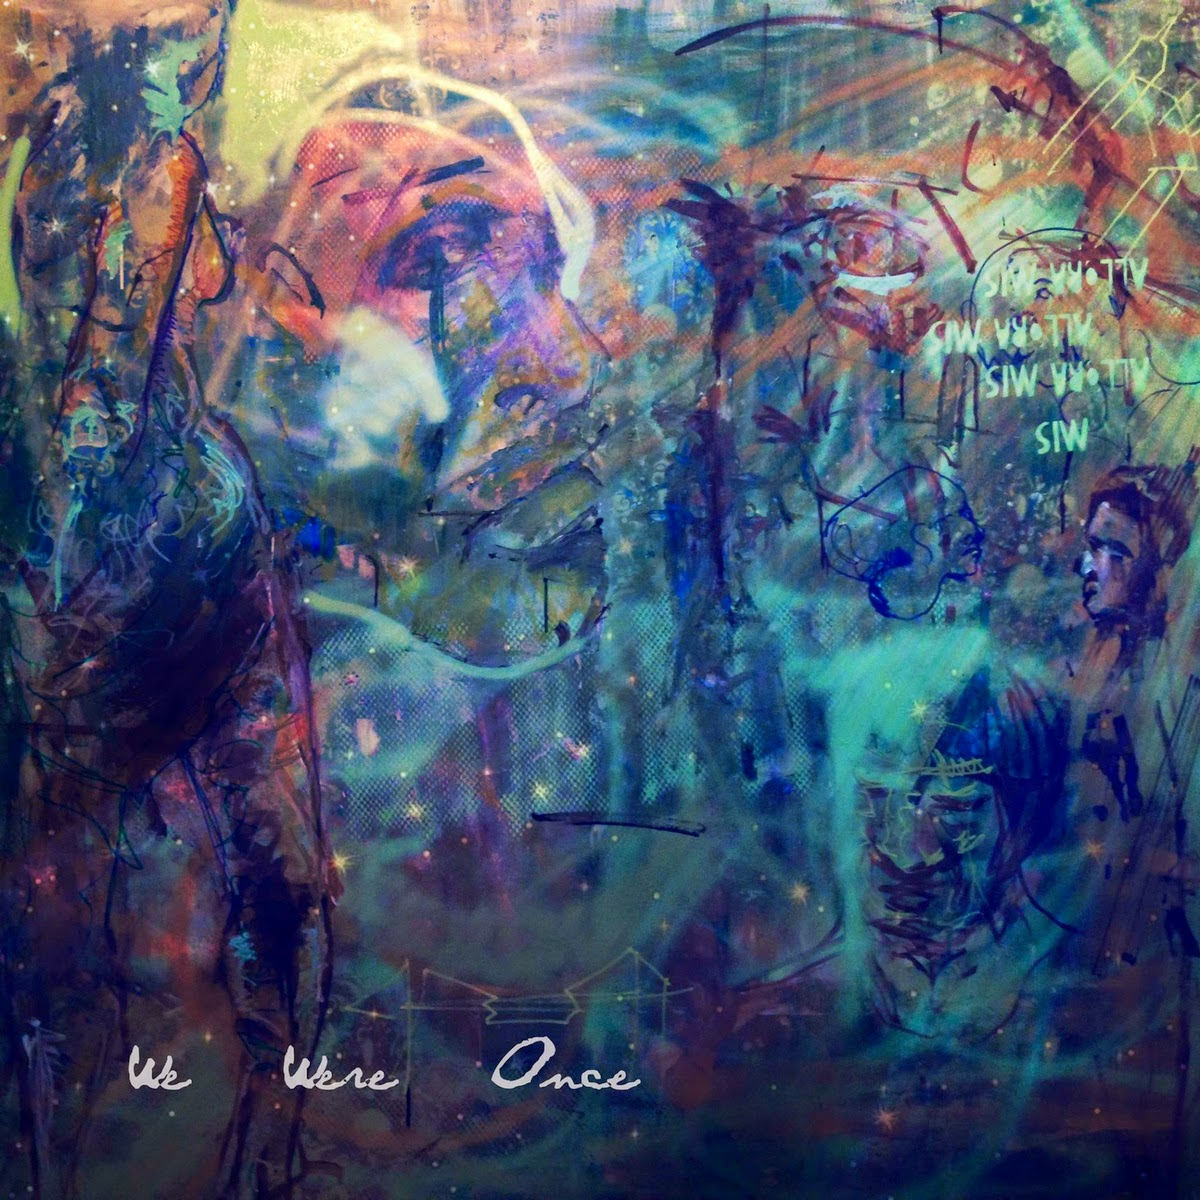 http://www.d4am.net/2014/12/allora-mis-we-were-once.html